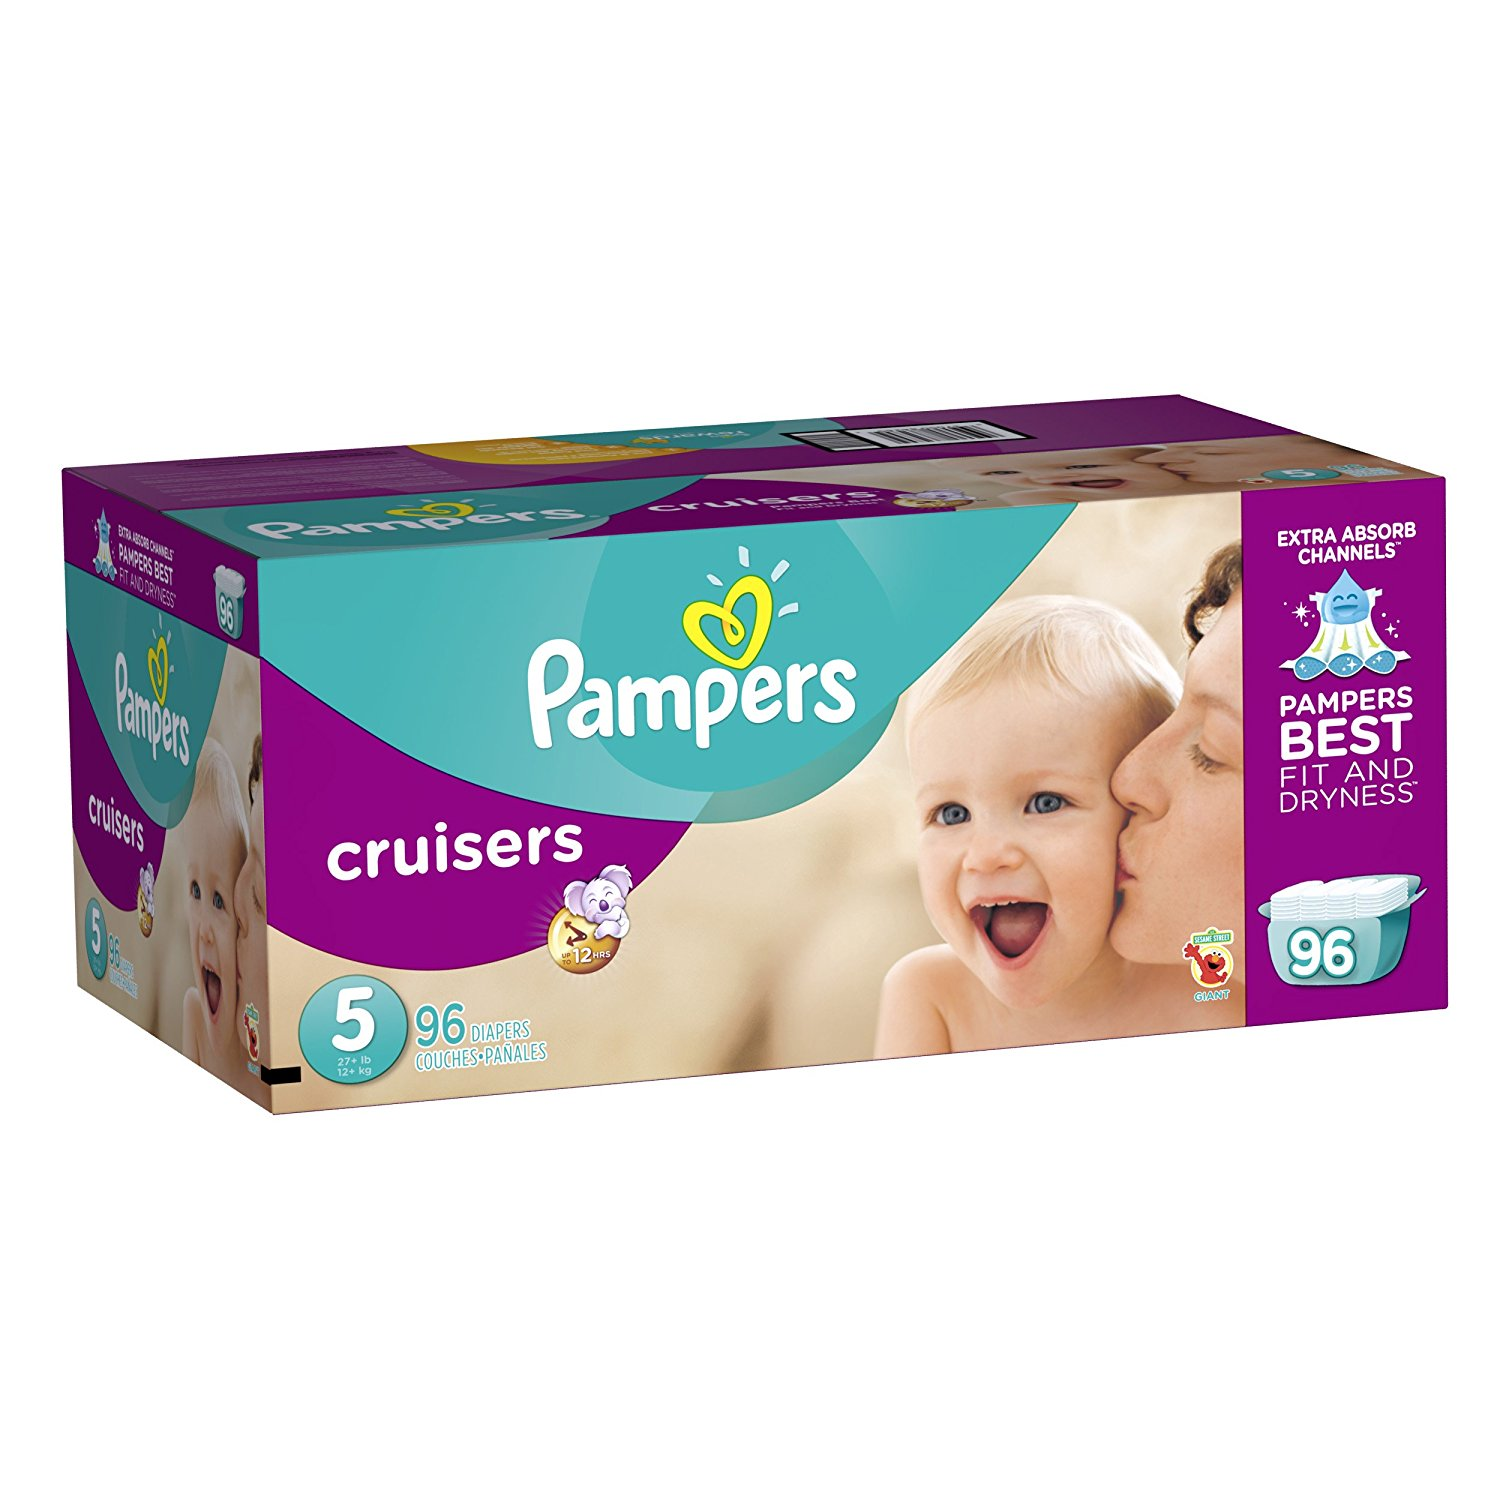 Pampers Cruisers Diapers Size 5, 96 Count